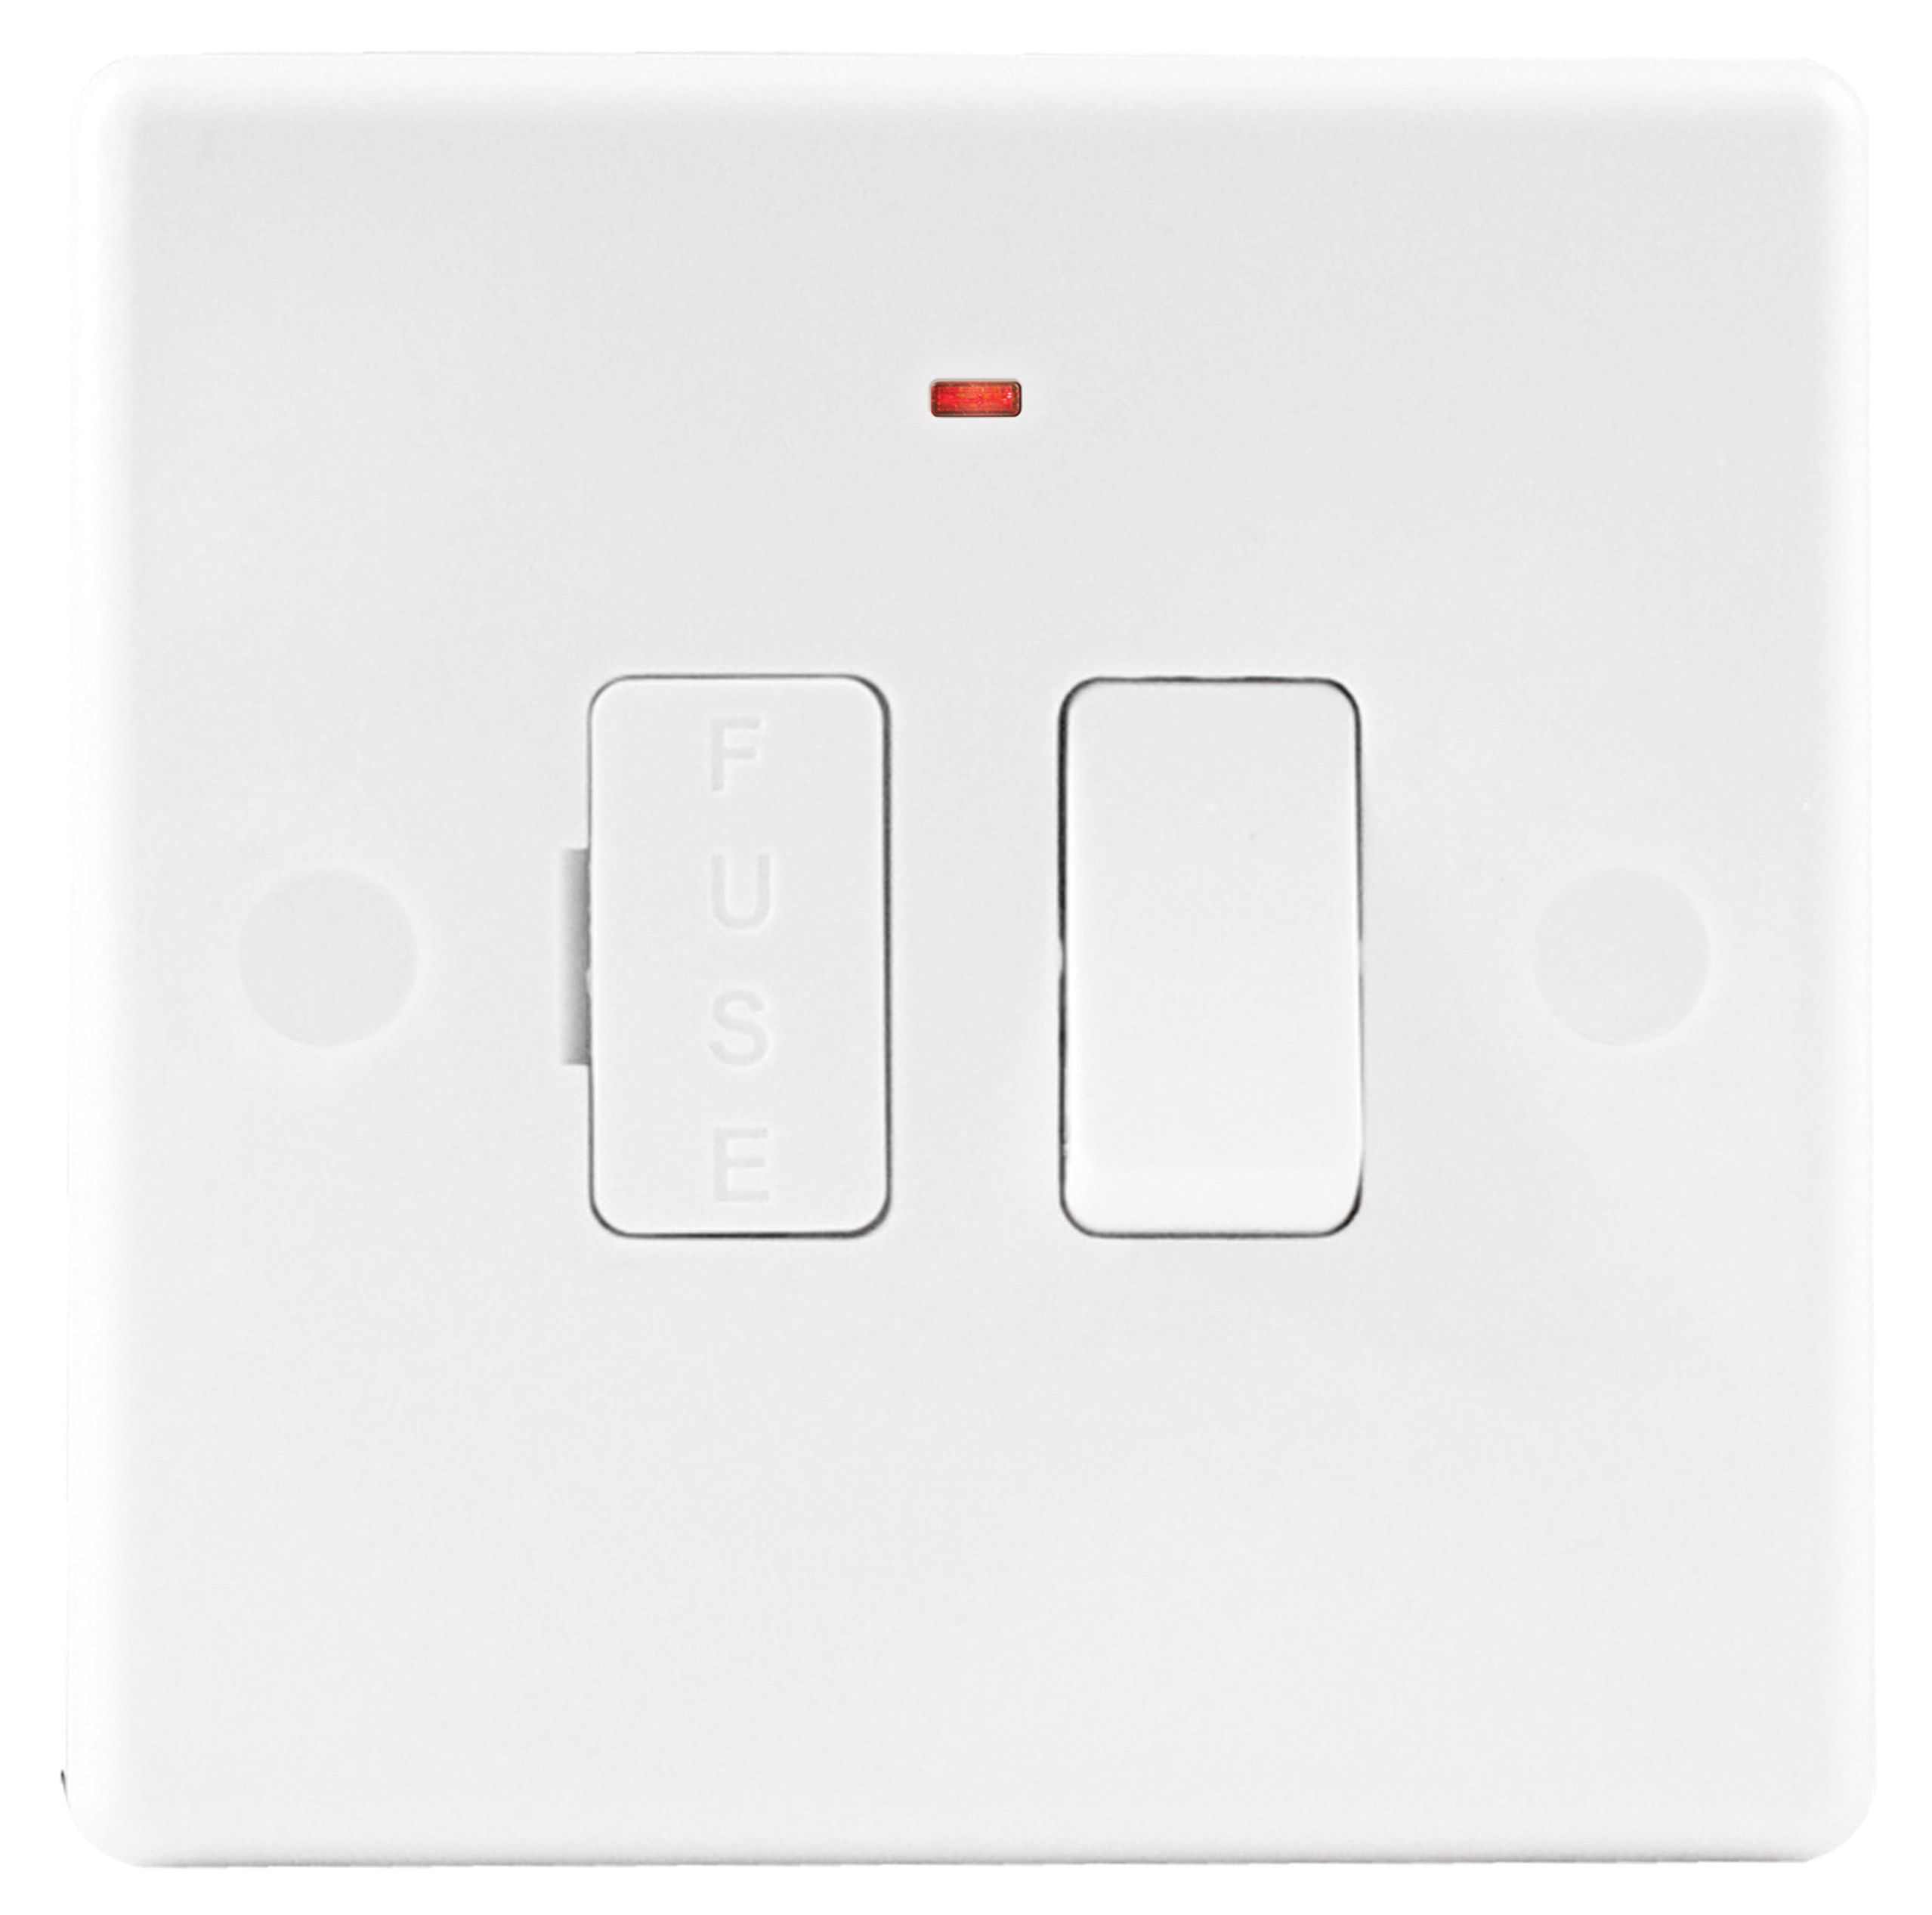 small resolution of wickes garage fuse box wire management wiring diagram wickes garage fuse box